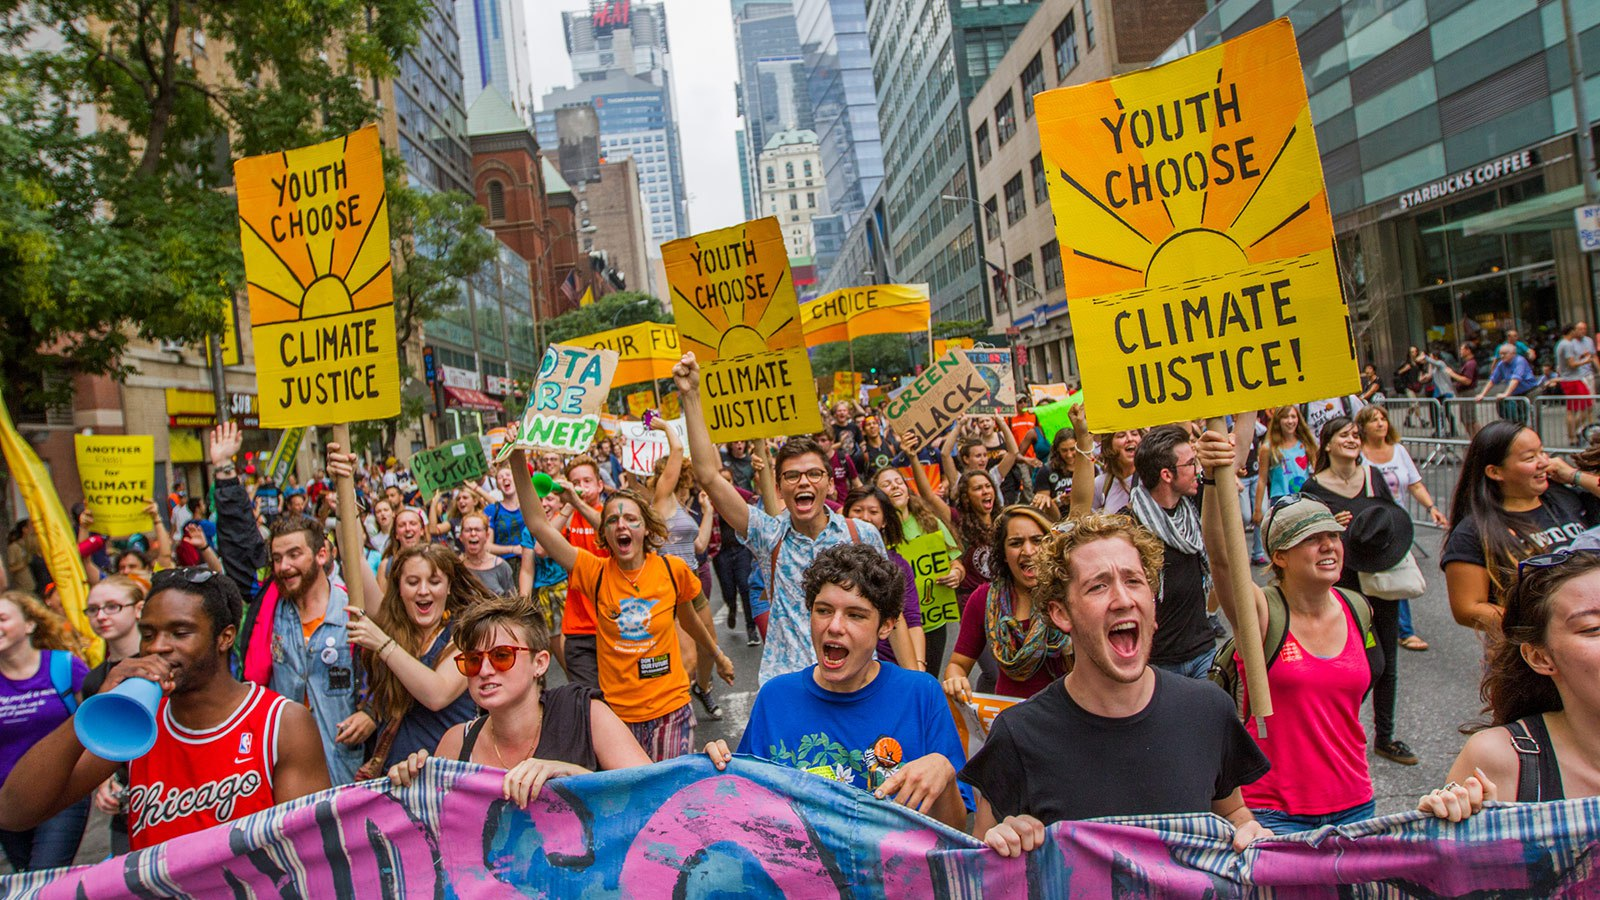 Scenes from the People's Climate March, New York, 2014